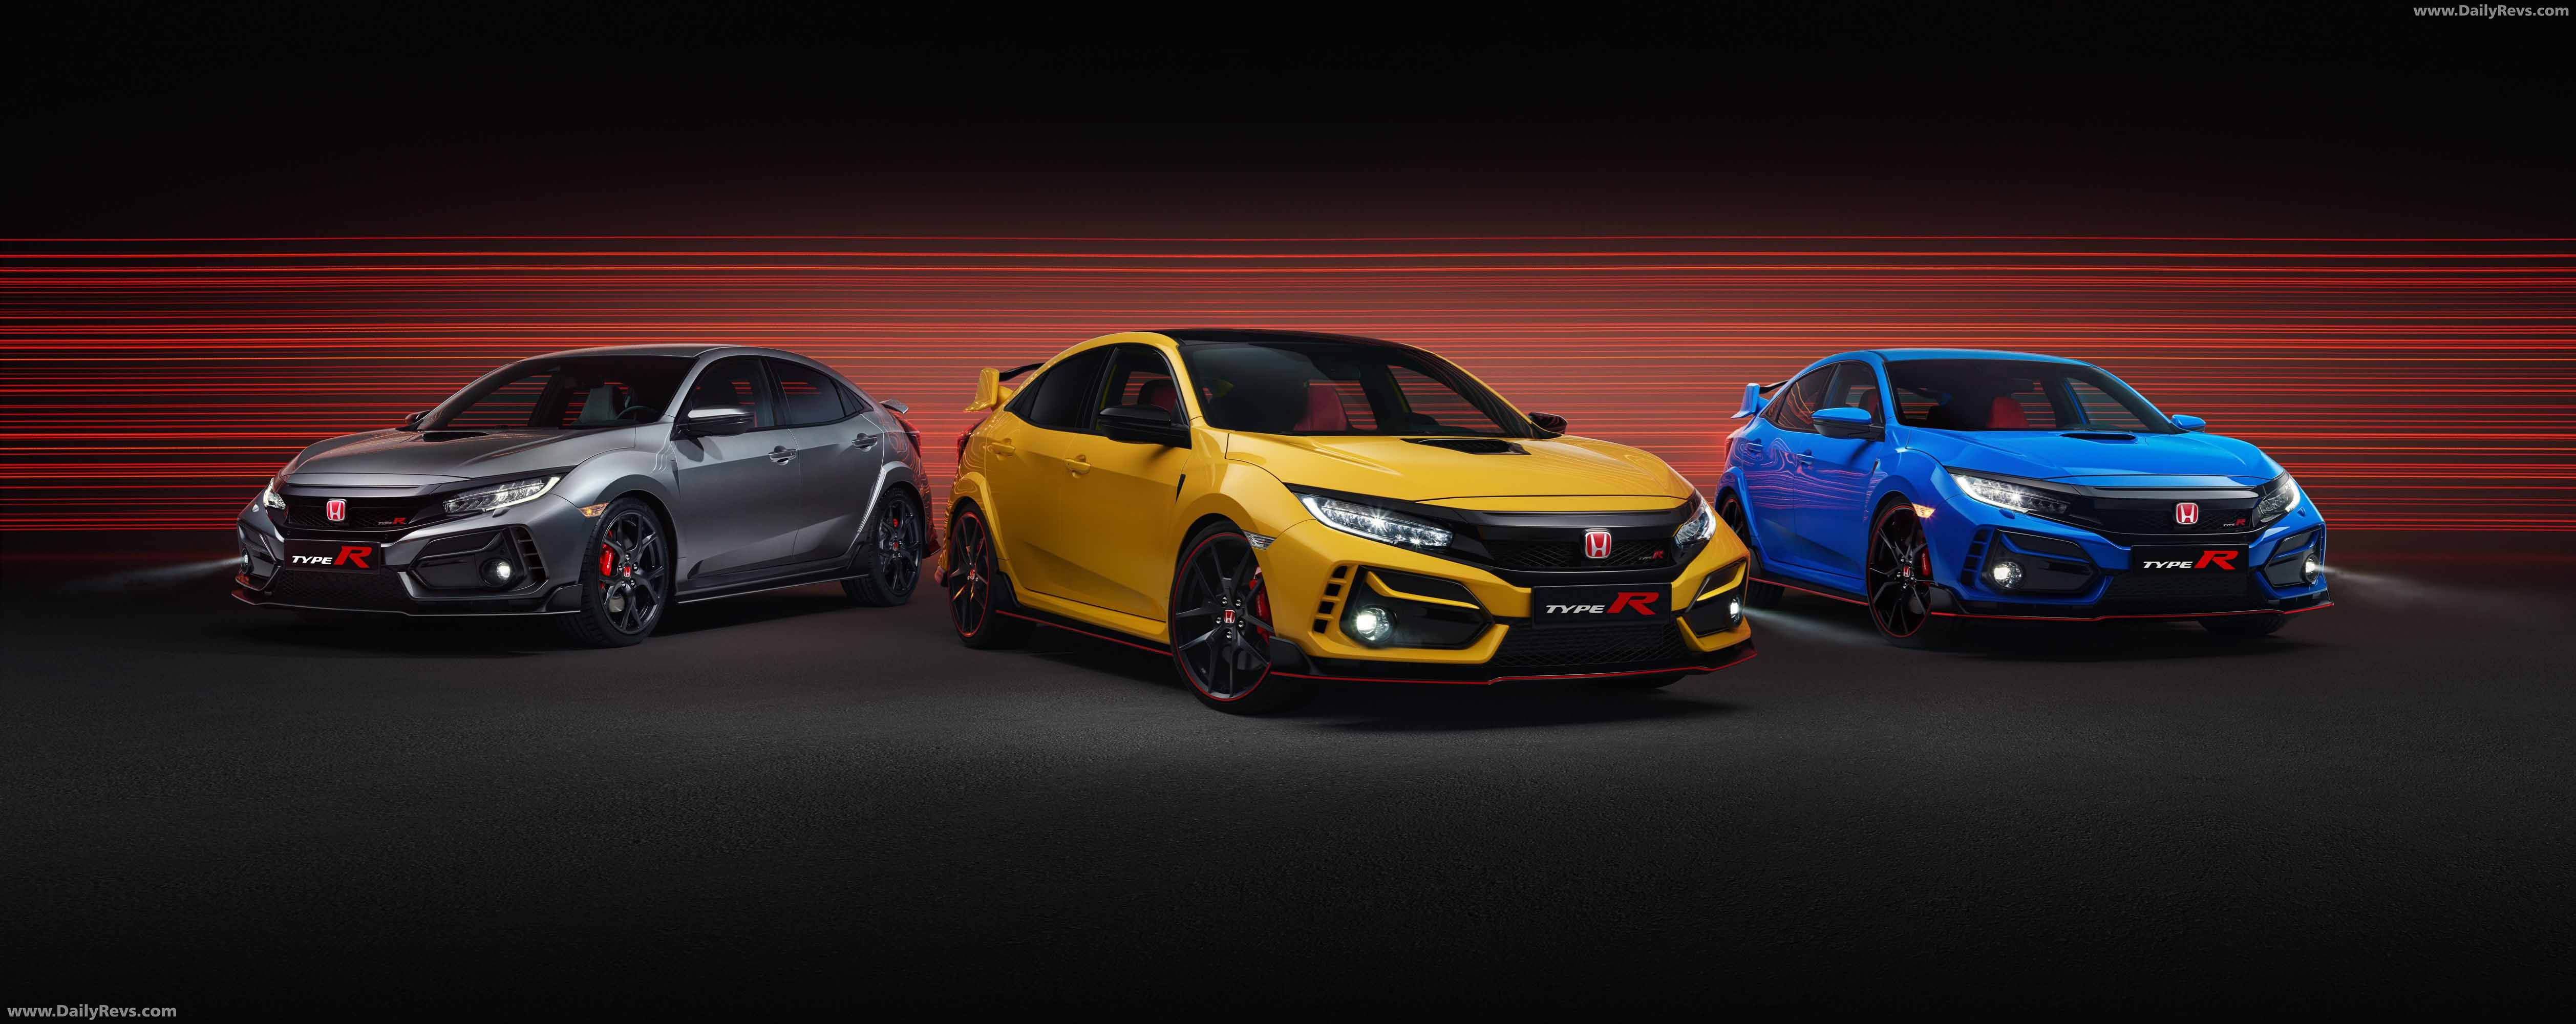 2021 Honda Civic Type R GT - HD Pictures, Videos, Specs ...